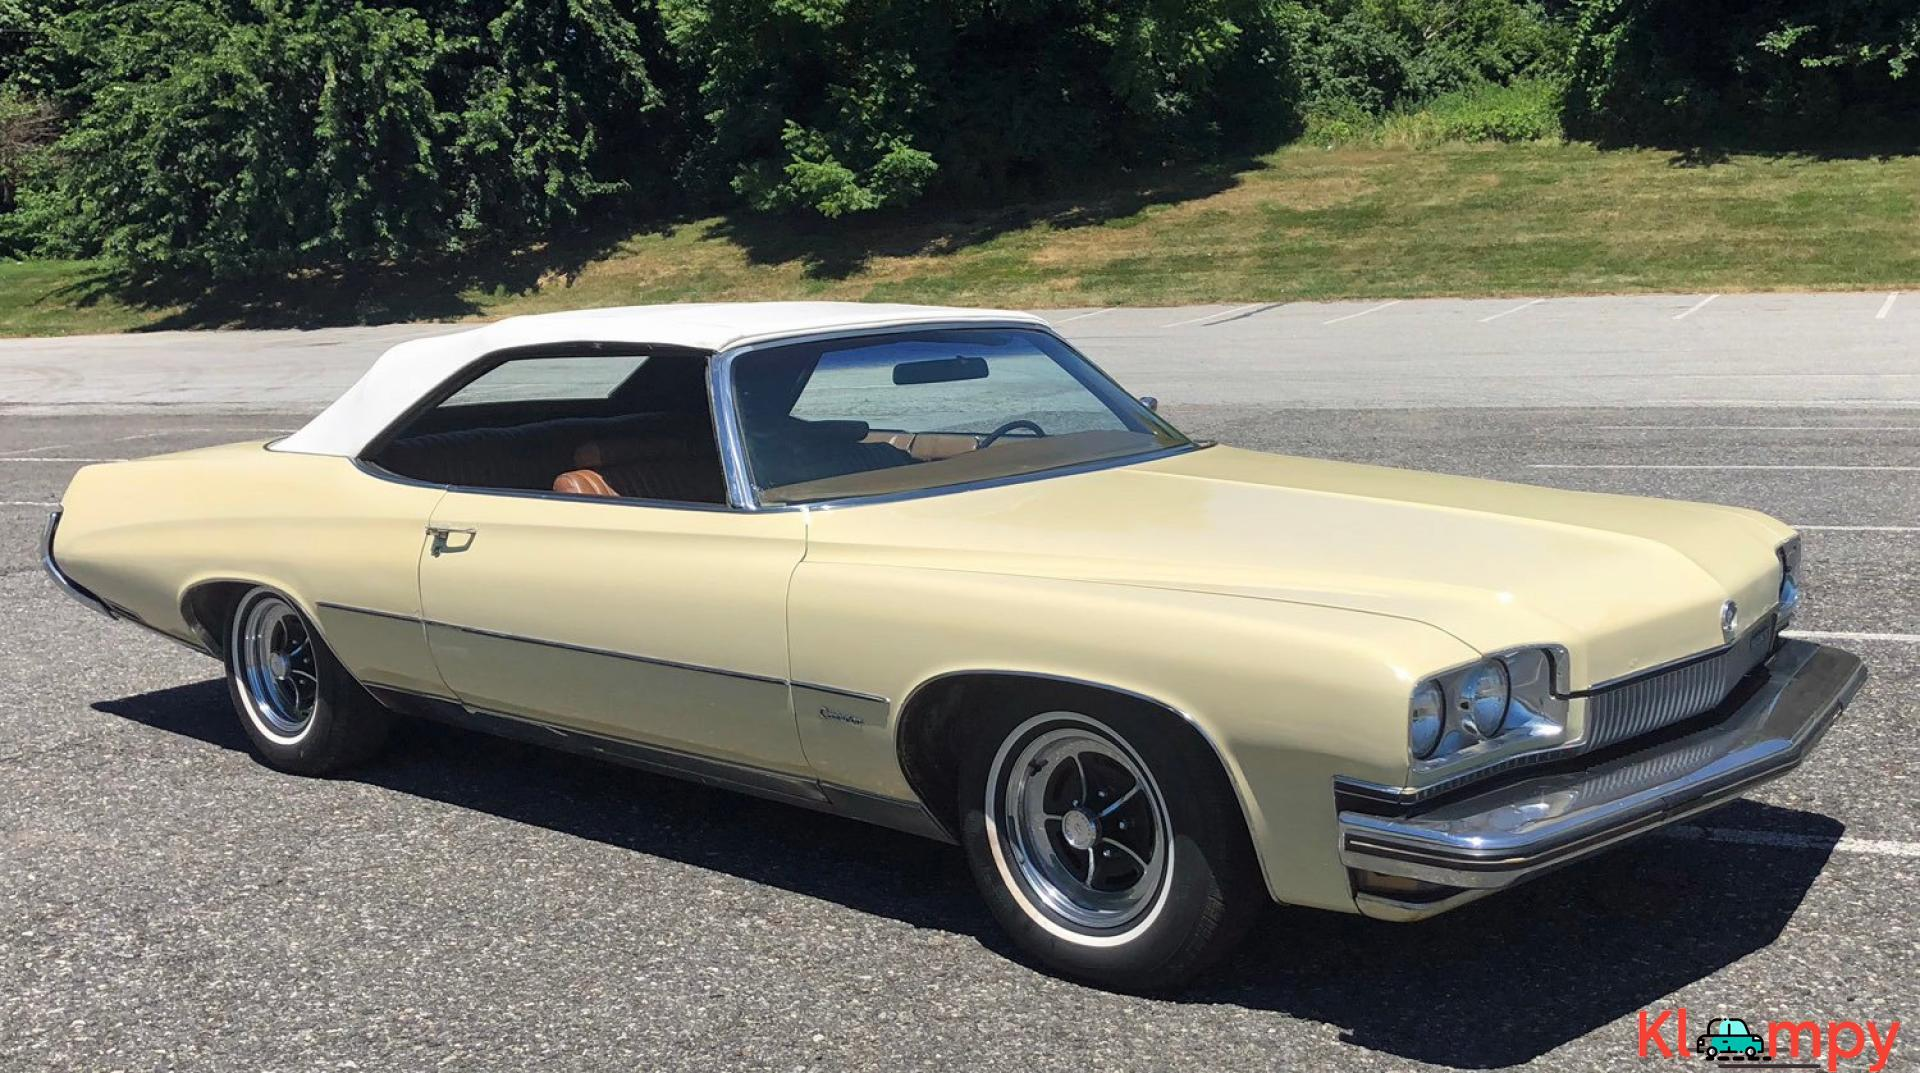 1973 Buick Centurion 350 Convertible V8 - 2/20